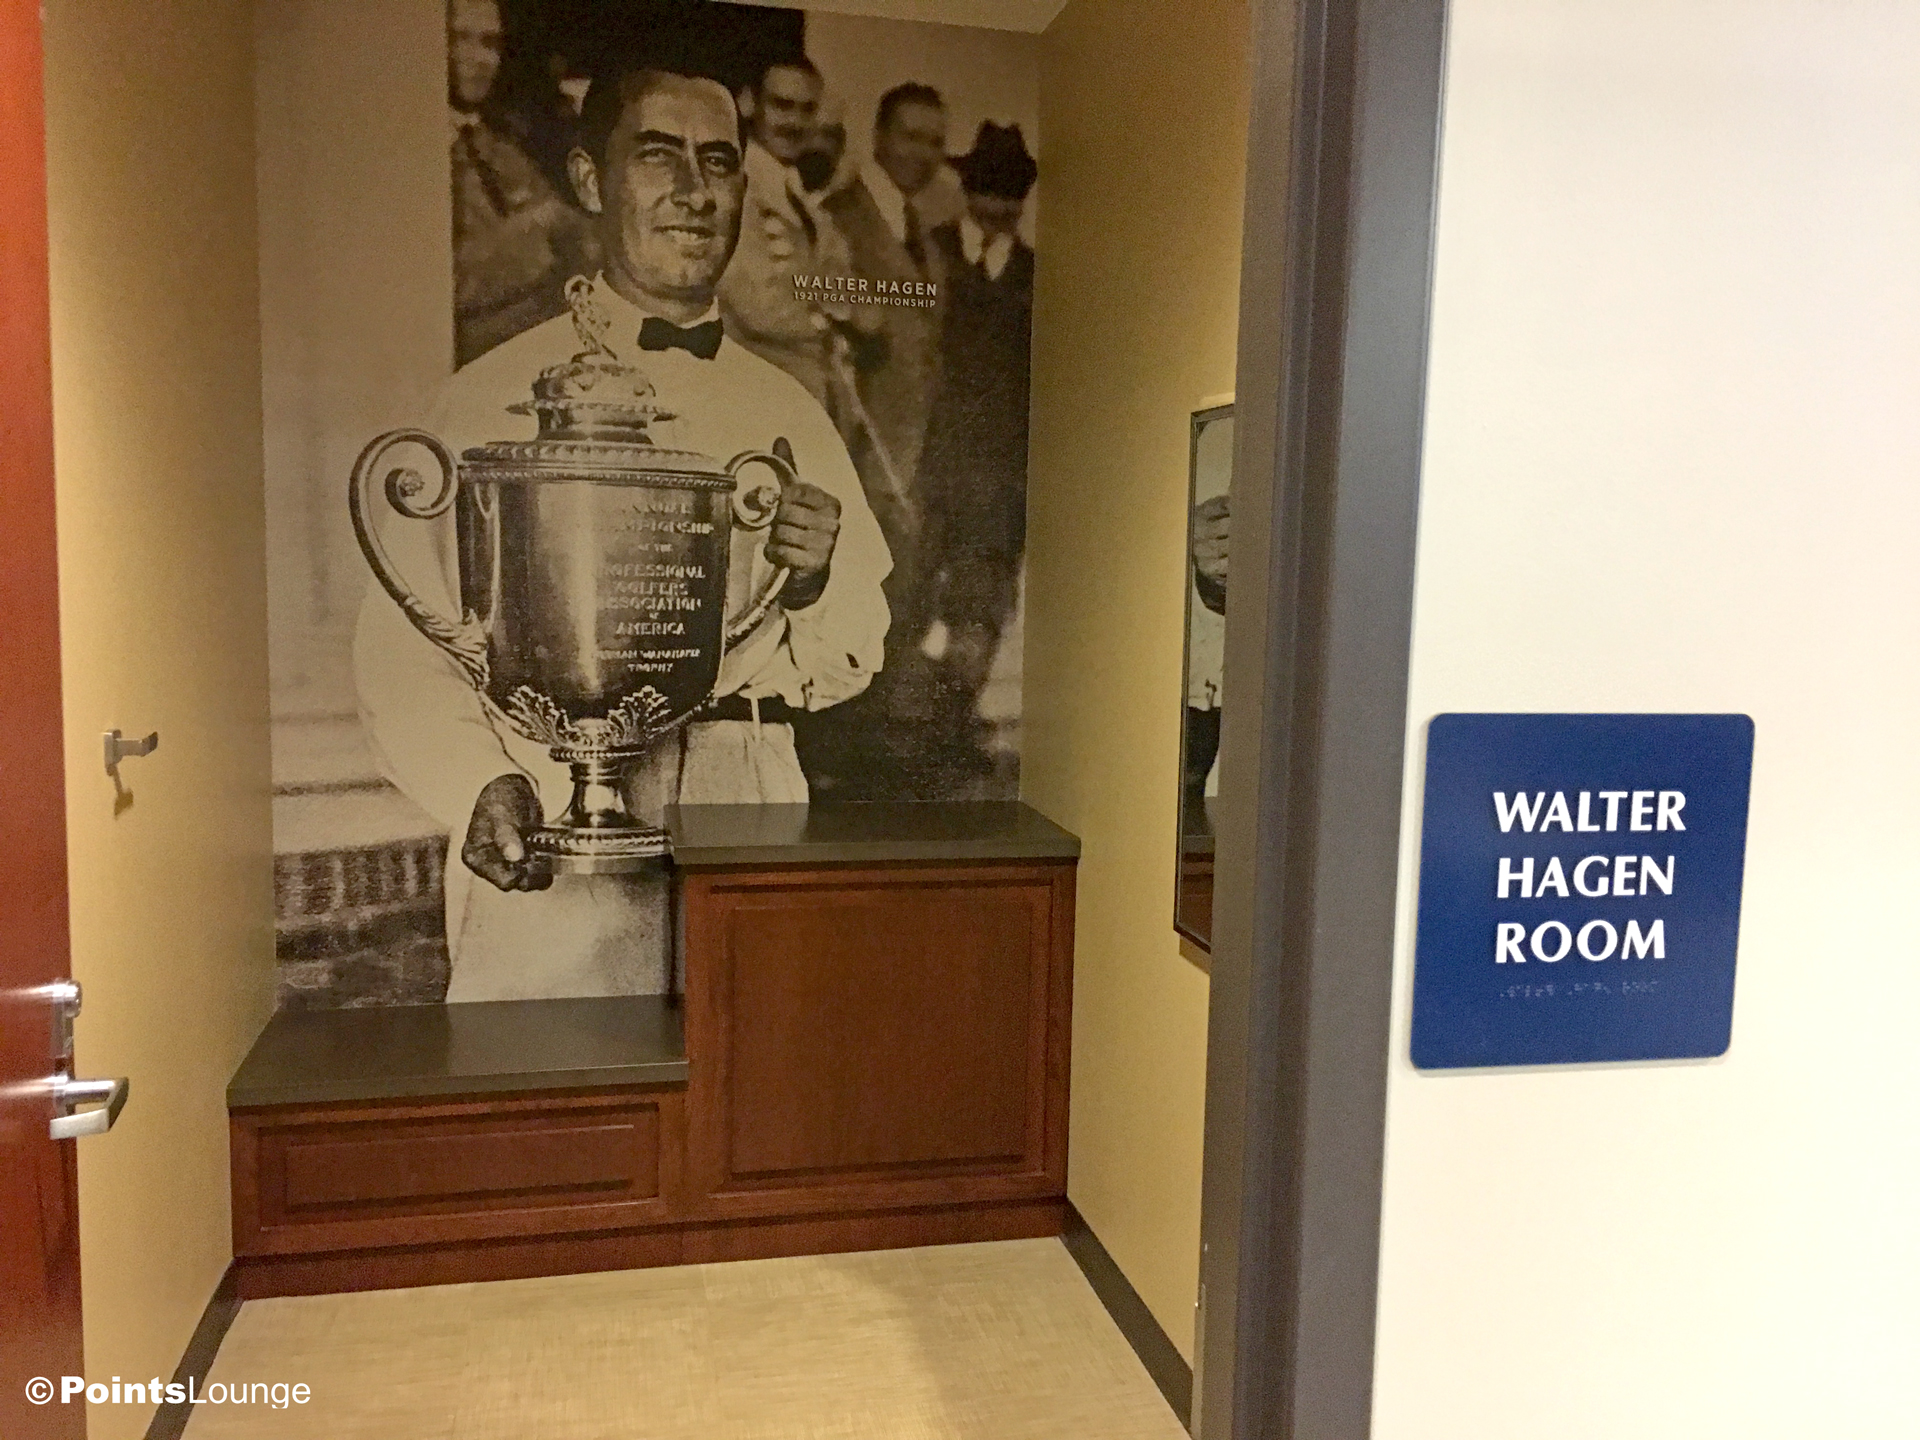 A view of the Walter Hagen Room inside the PGA MSP golf-themed airport lounge at the Minneapolis-St. Paul International Airport. One of the ways the lounge can be accessed is with Priority Pass membership. (Click for a larger image.)